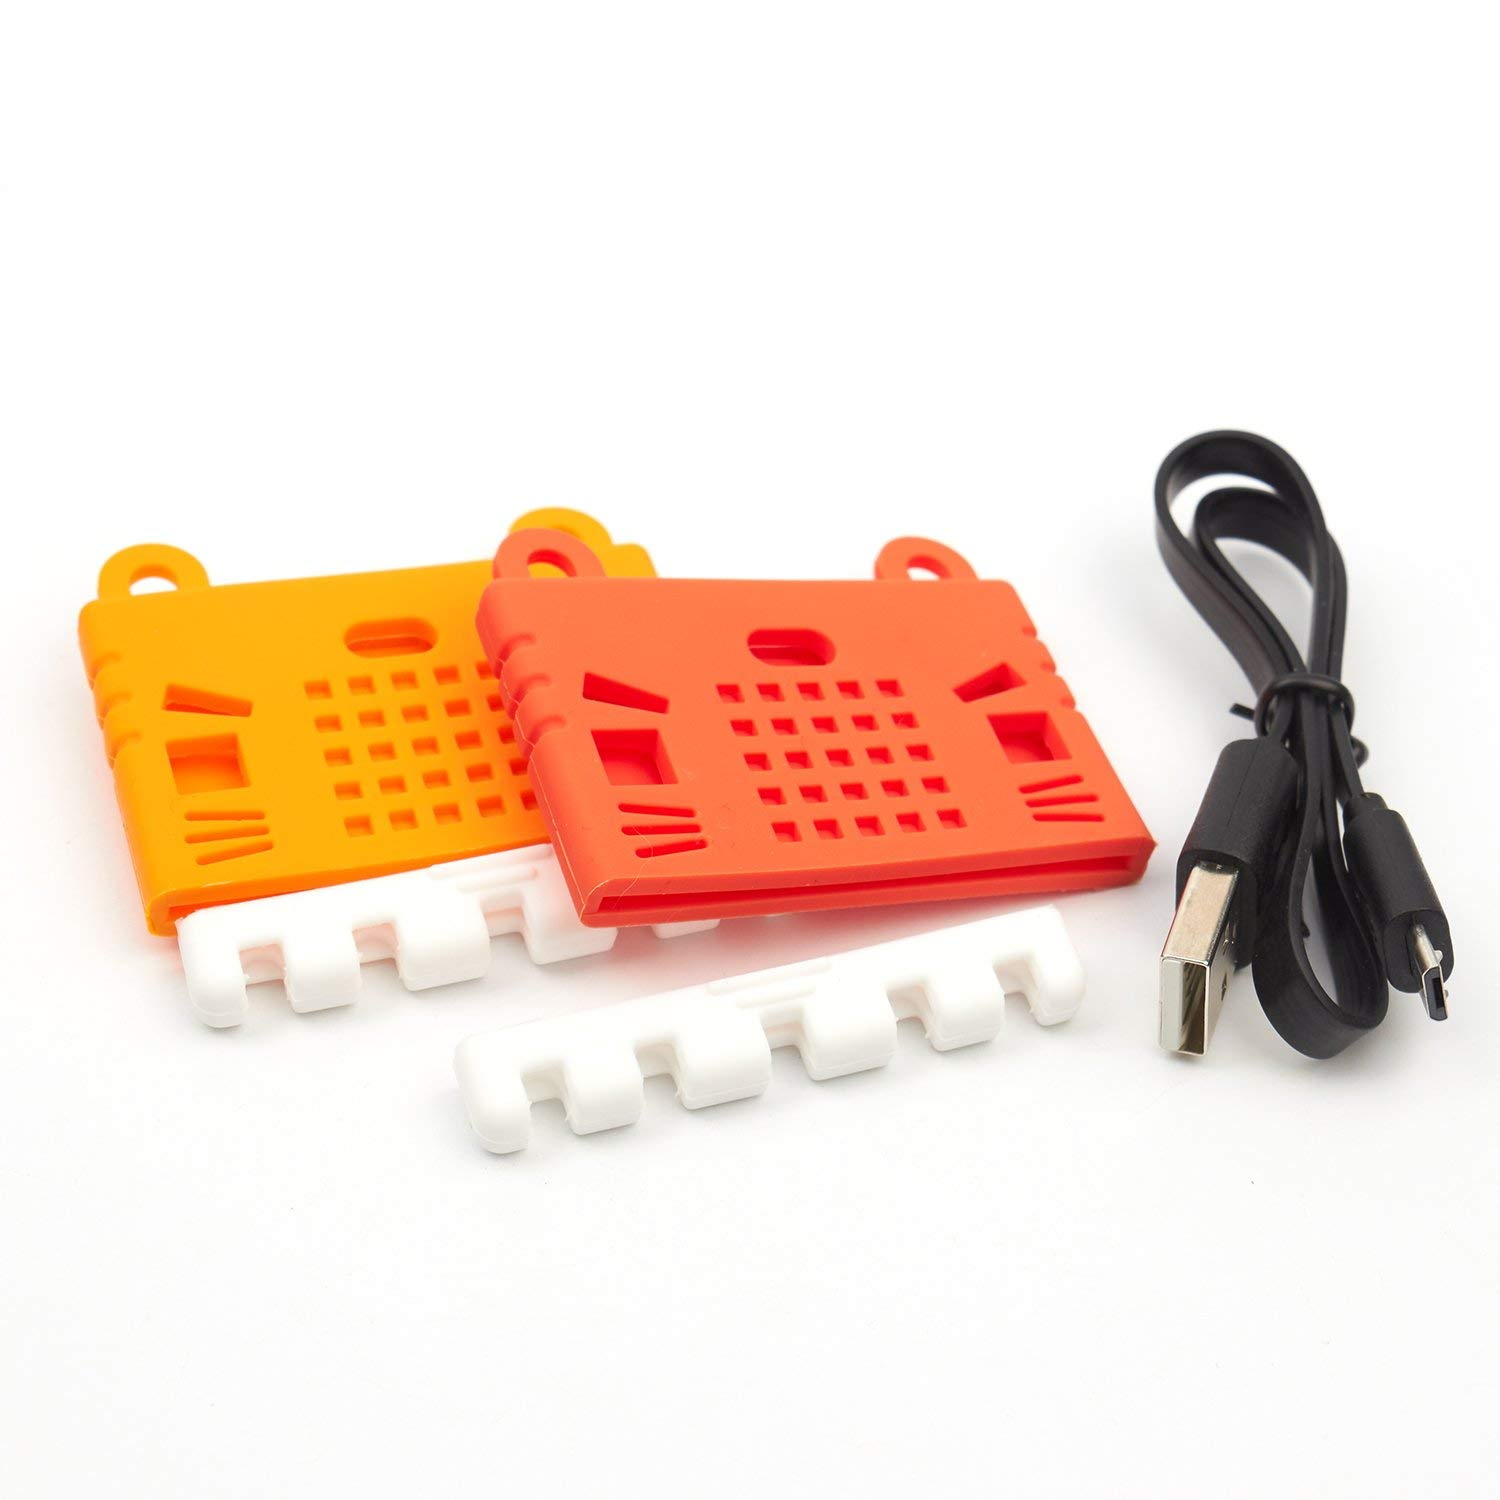 KittenBot Micro:Bit Case (2 PCS with 1 USB Cable) - Liquid Silicone - Soft Microfiber - Cute Pattern - Access to All Ports Mounted in 30 Seconds (2 colors: Red and Orange)